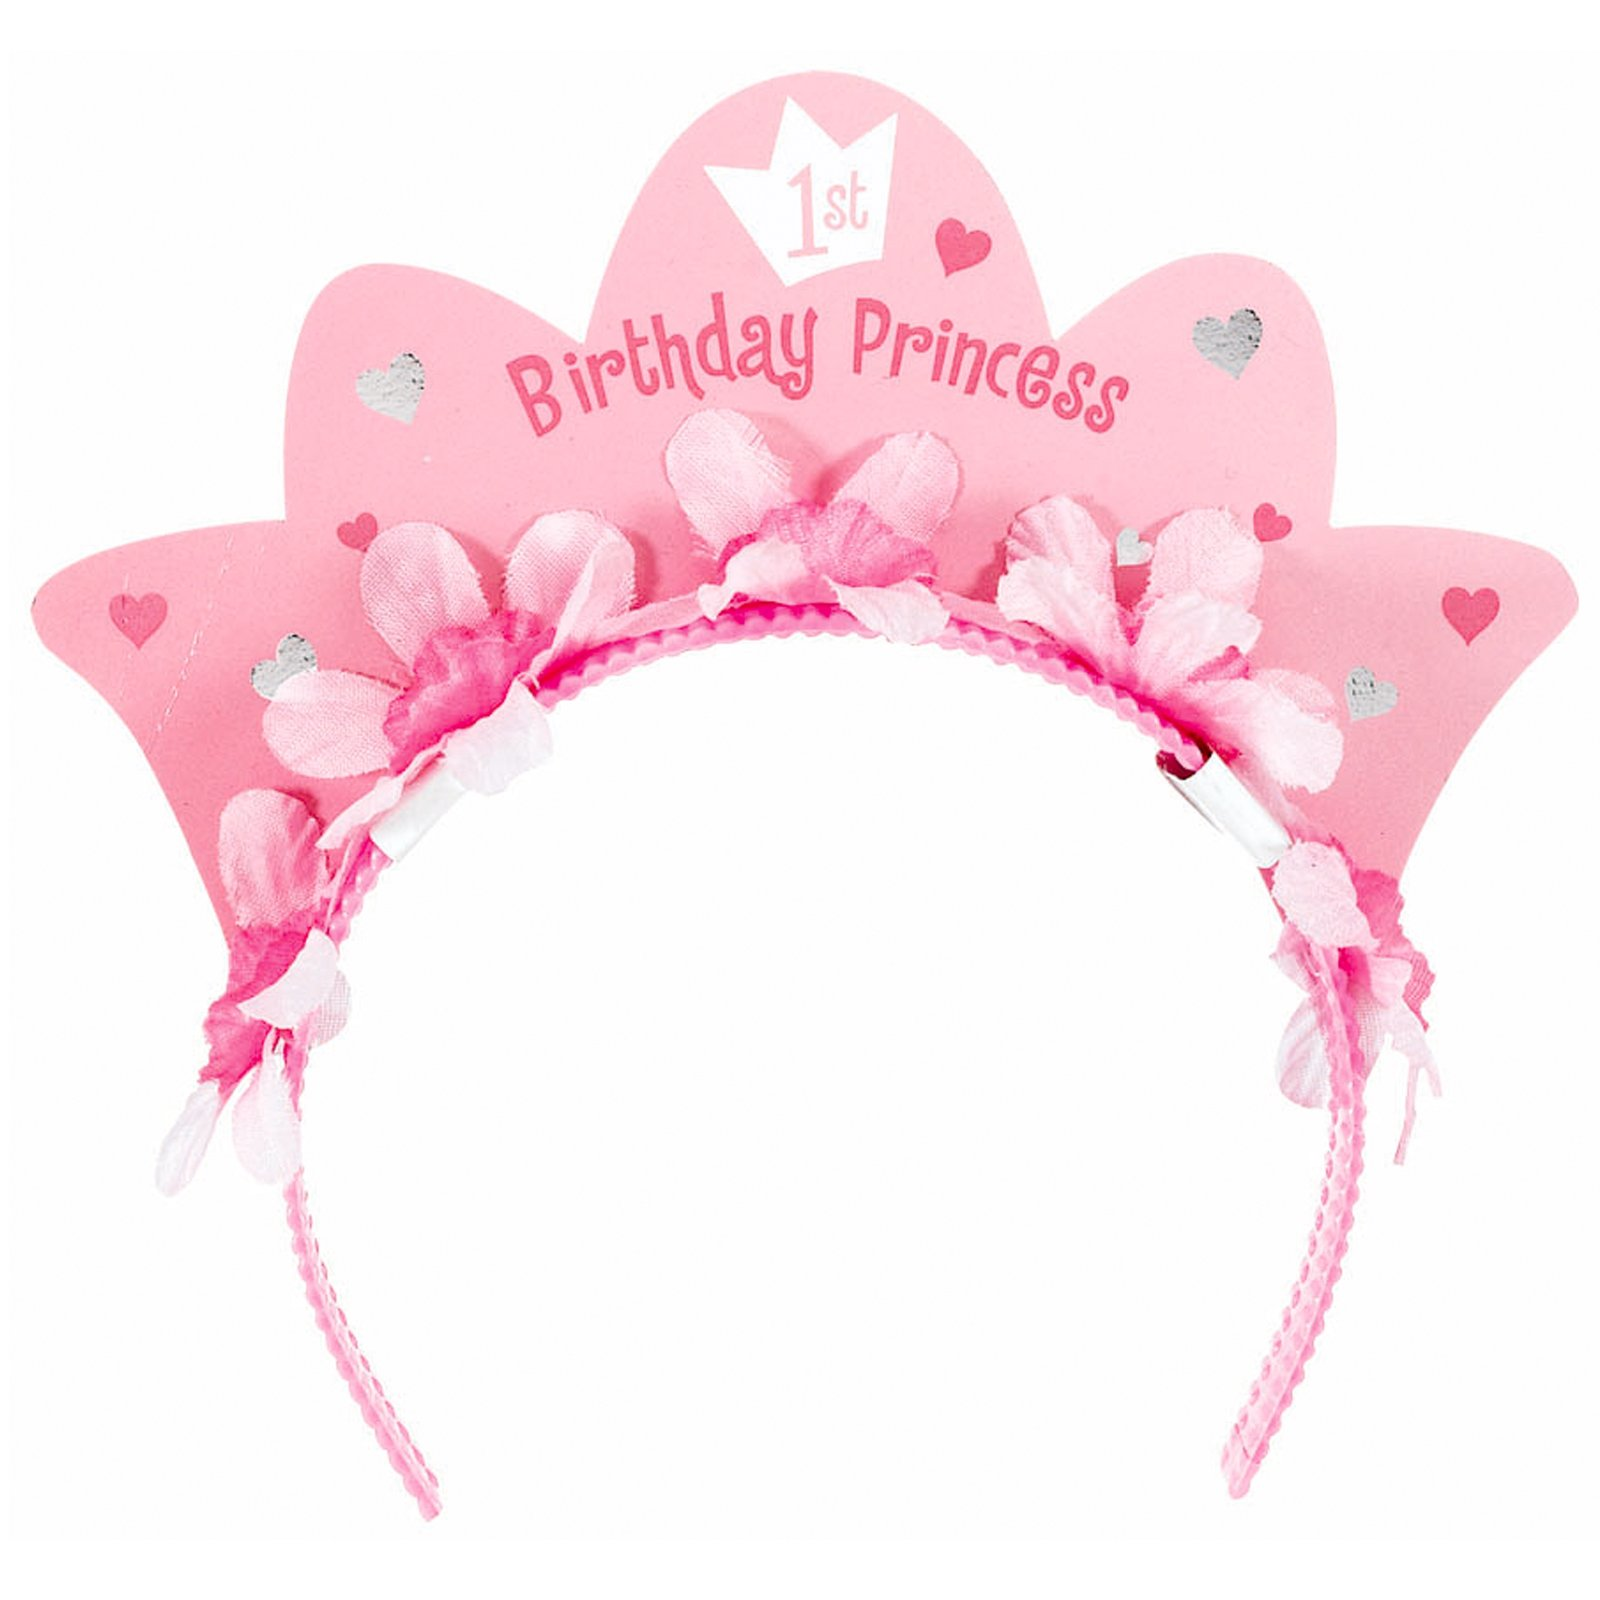 1st Birthday Princess Tiara Headband